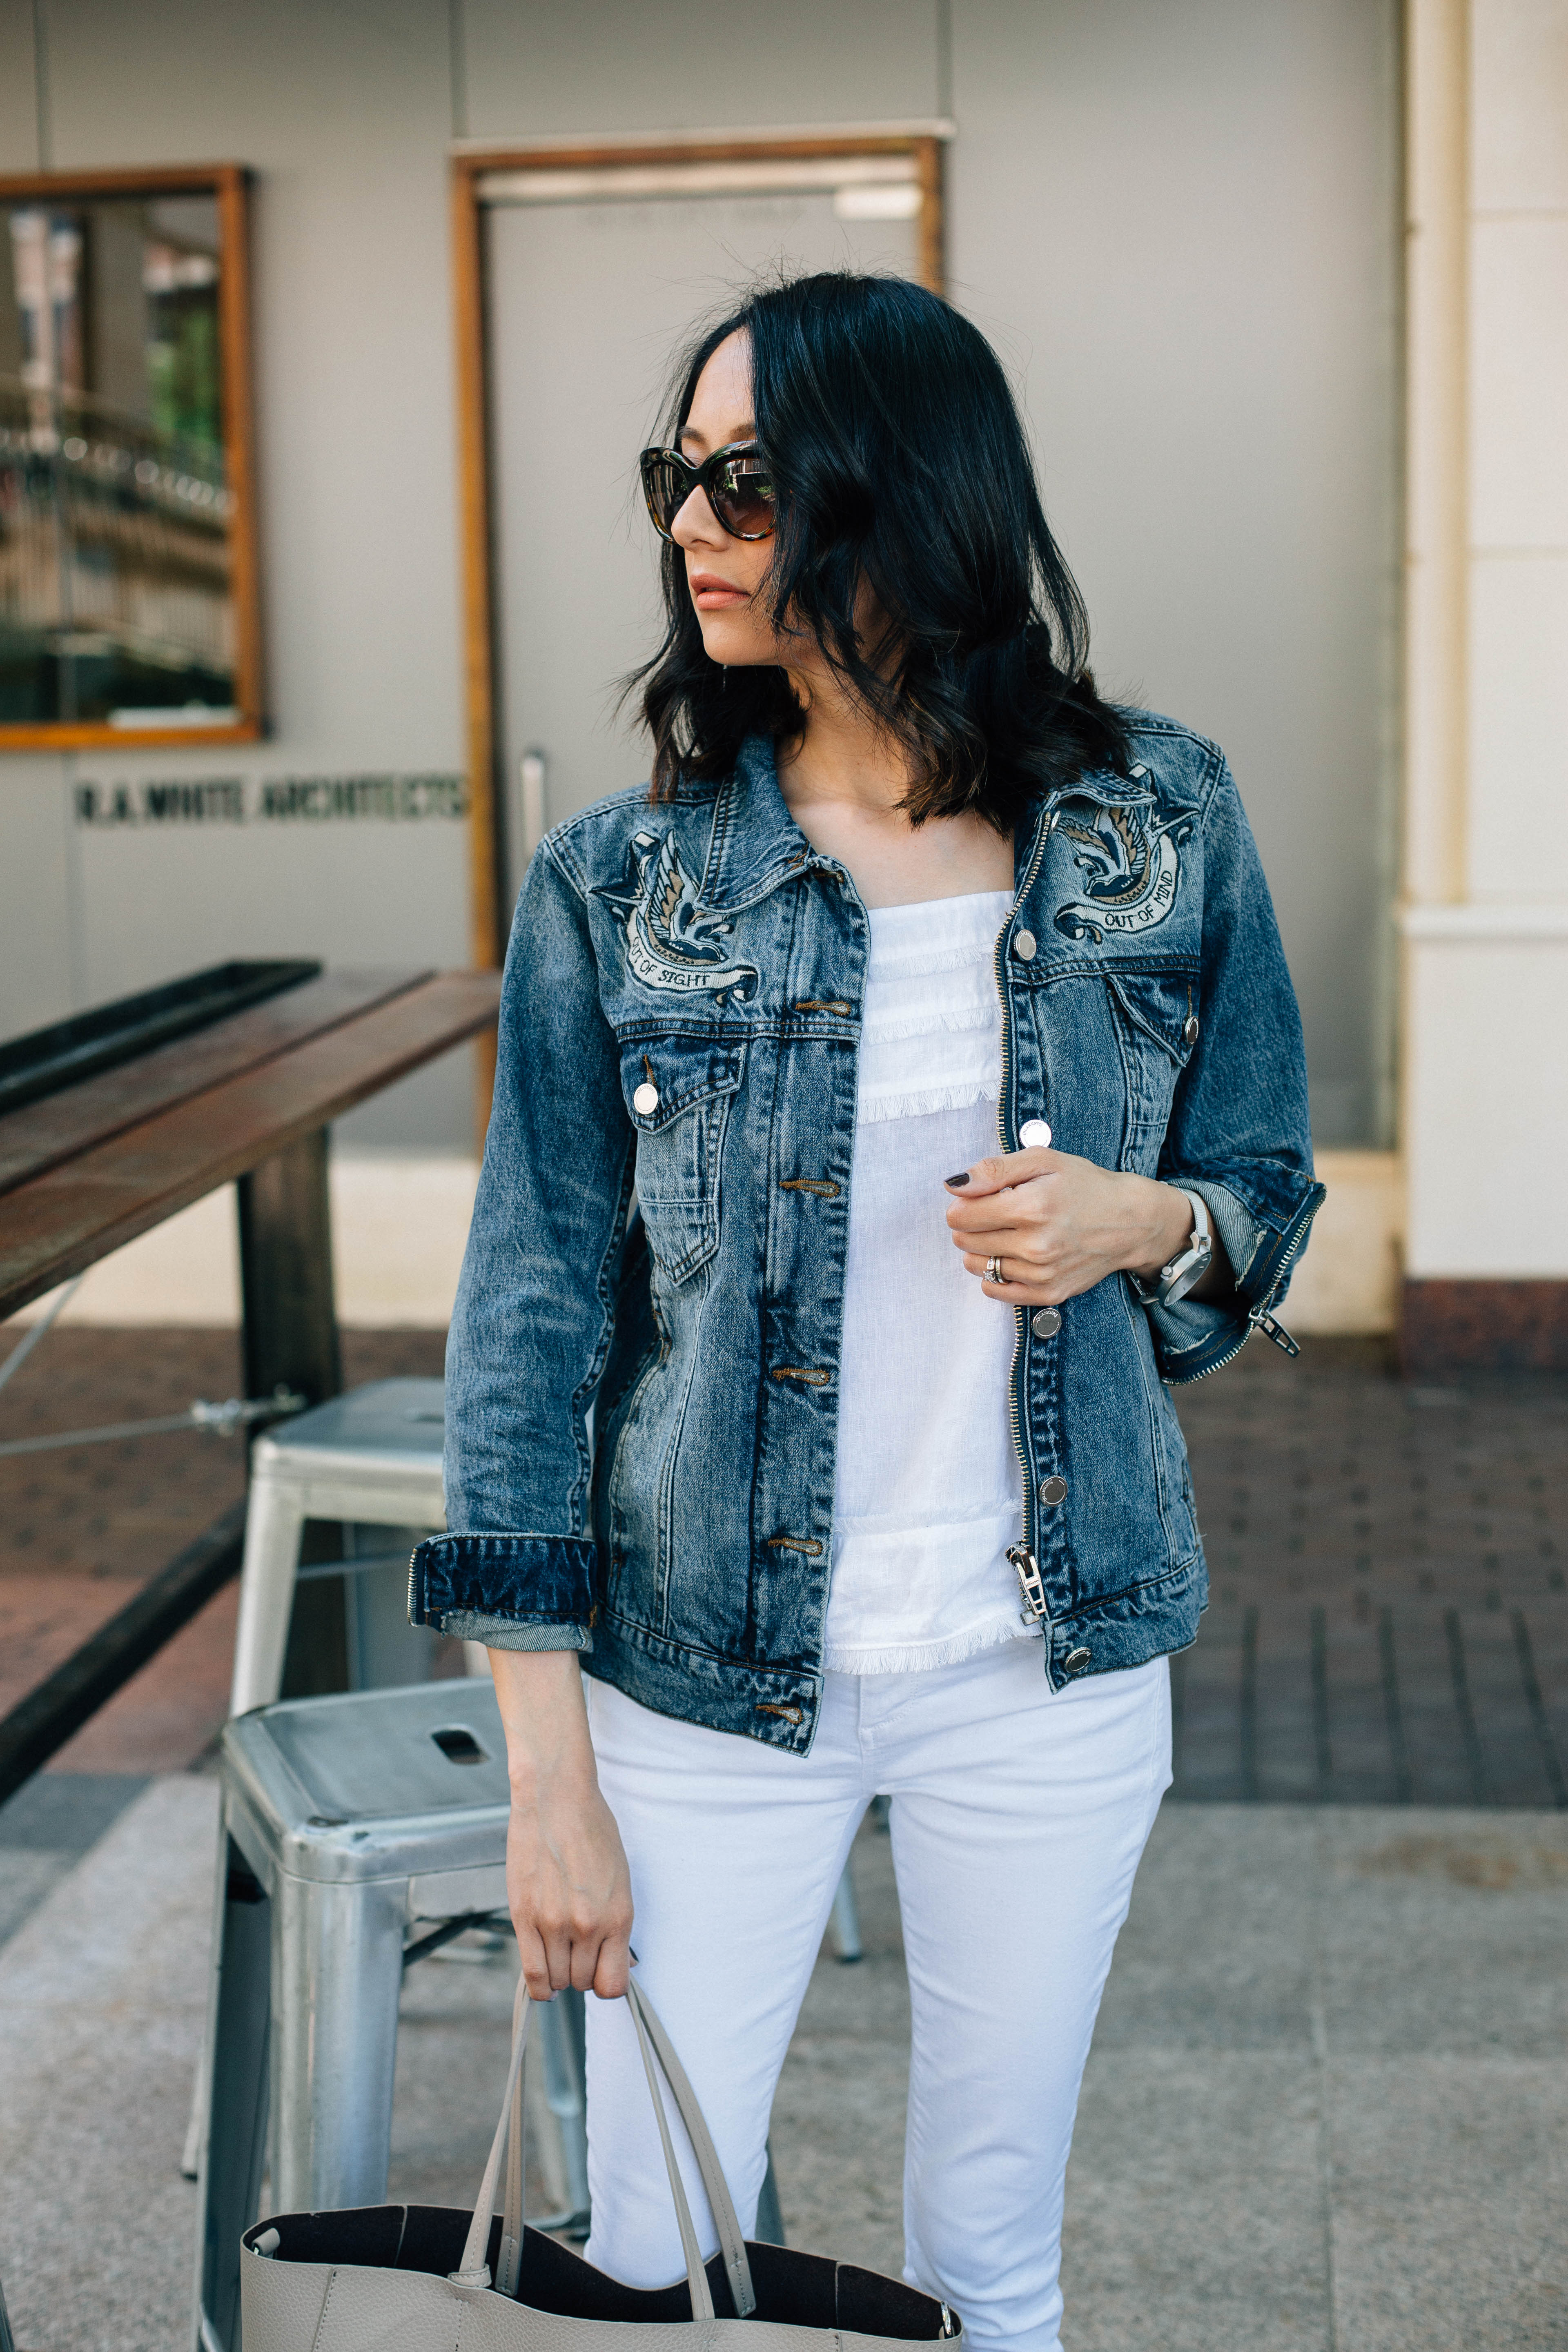 Lifestyle blogger Lilly Beltran of Daily Craving in a casual weekend look wearing an embroidered denim jacket and white skinny jeans